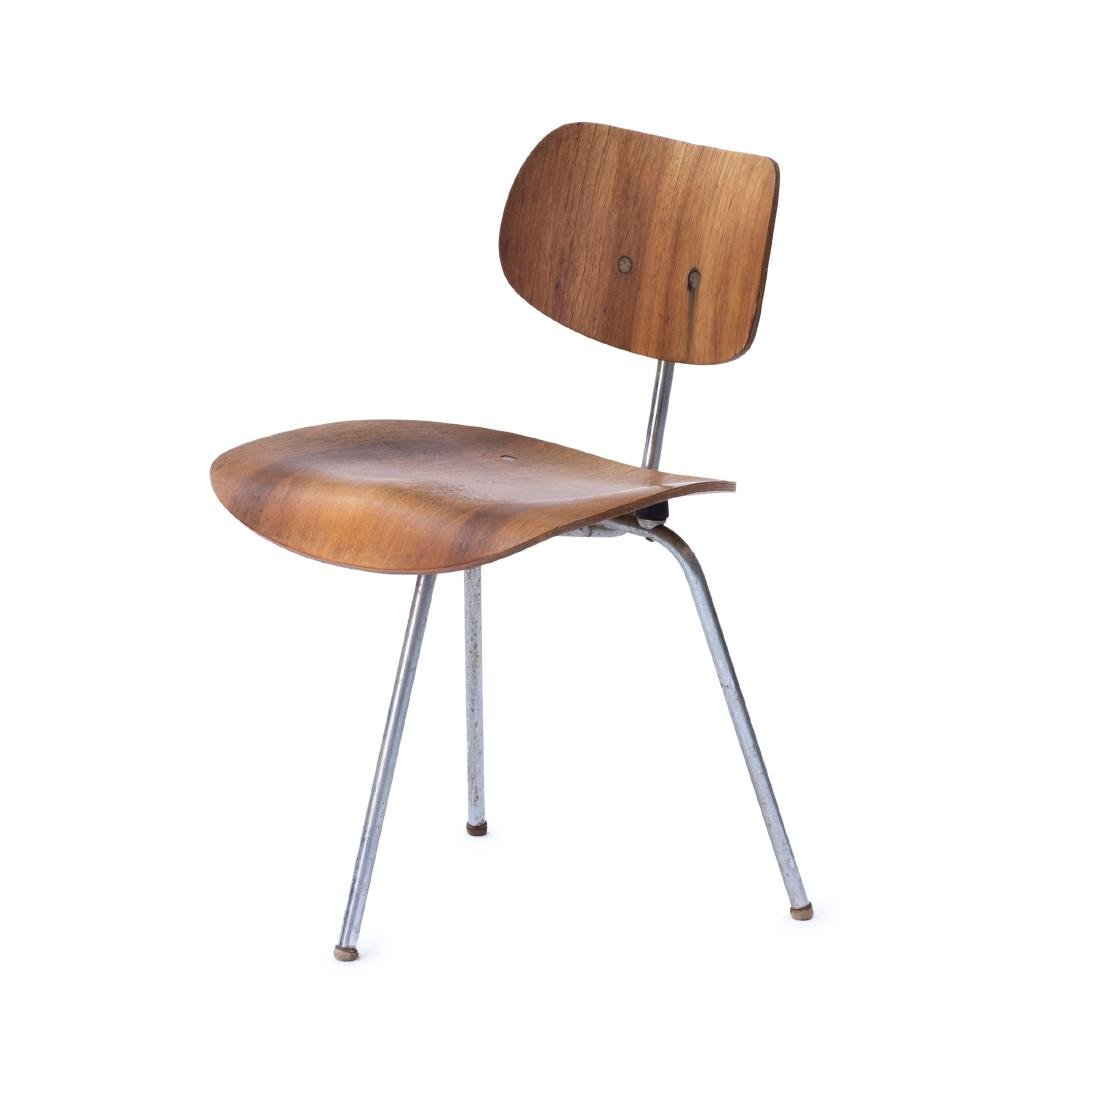 'SE 69' three-legged chair, 1952